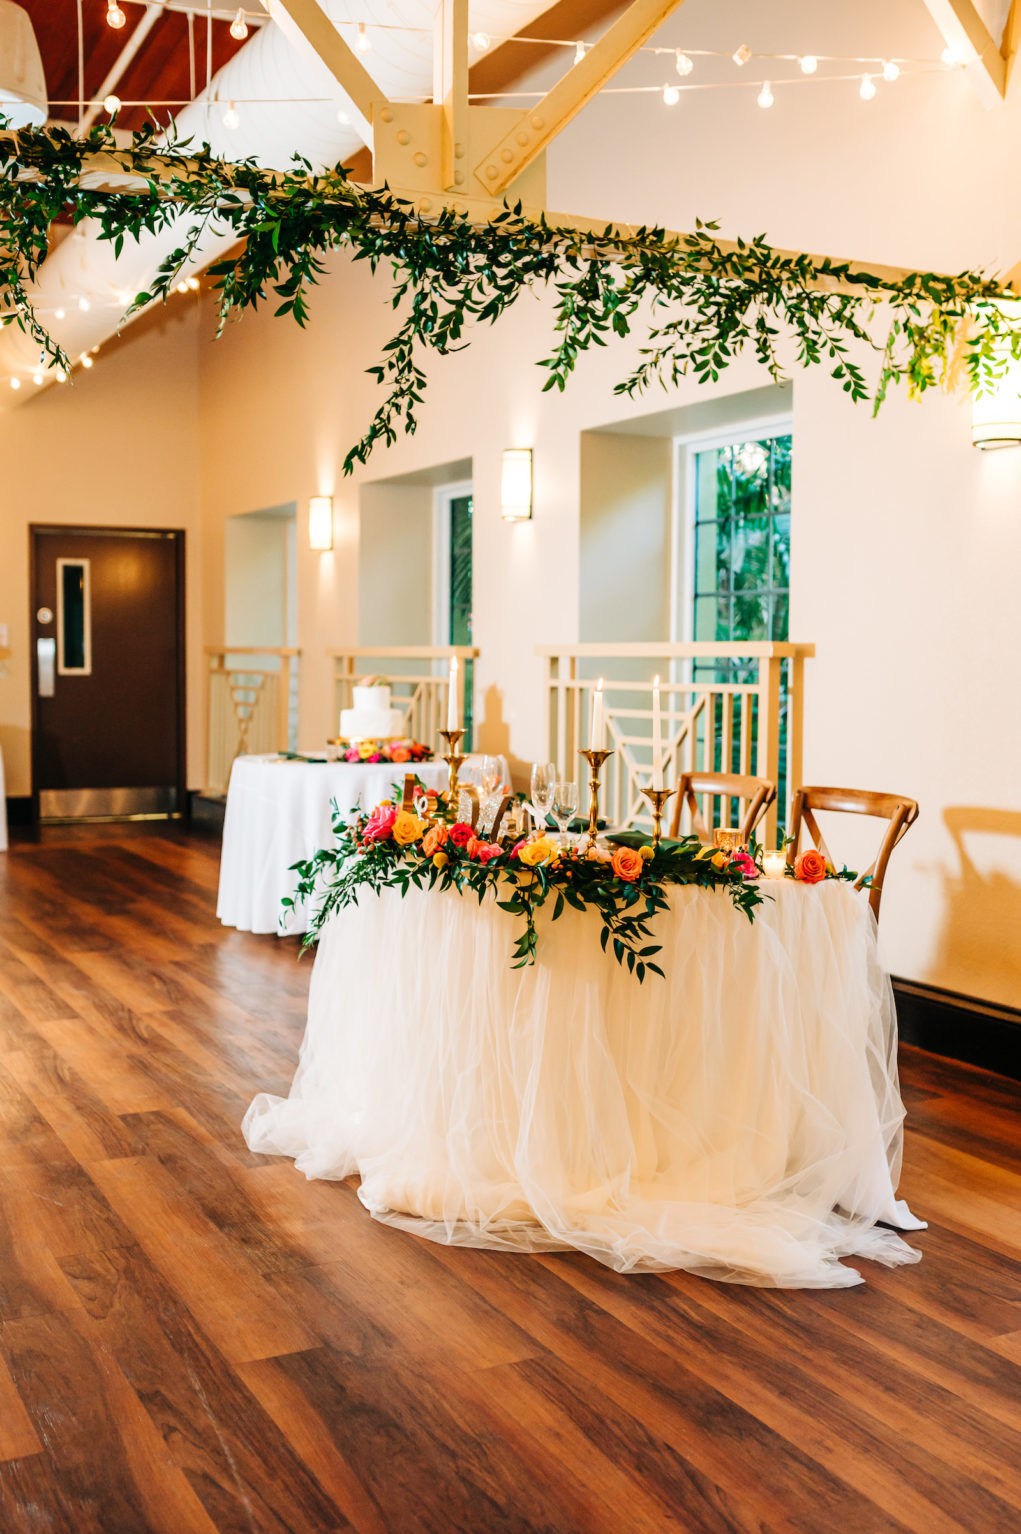 Garden Style Wedding Reception Décor Inspiration | White Linen and Circular Table with Wooden Chairs and Hanging Greenery | Vibrant Pink, Yellow, and Orange Centerpieces | Sweetheart Table Ideas